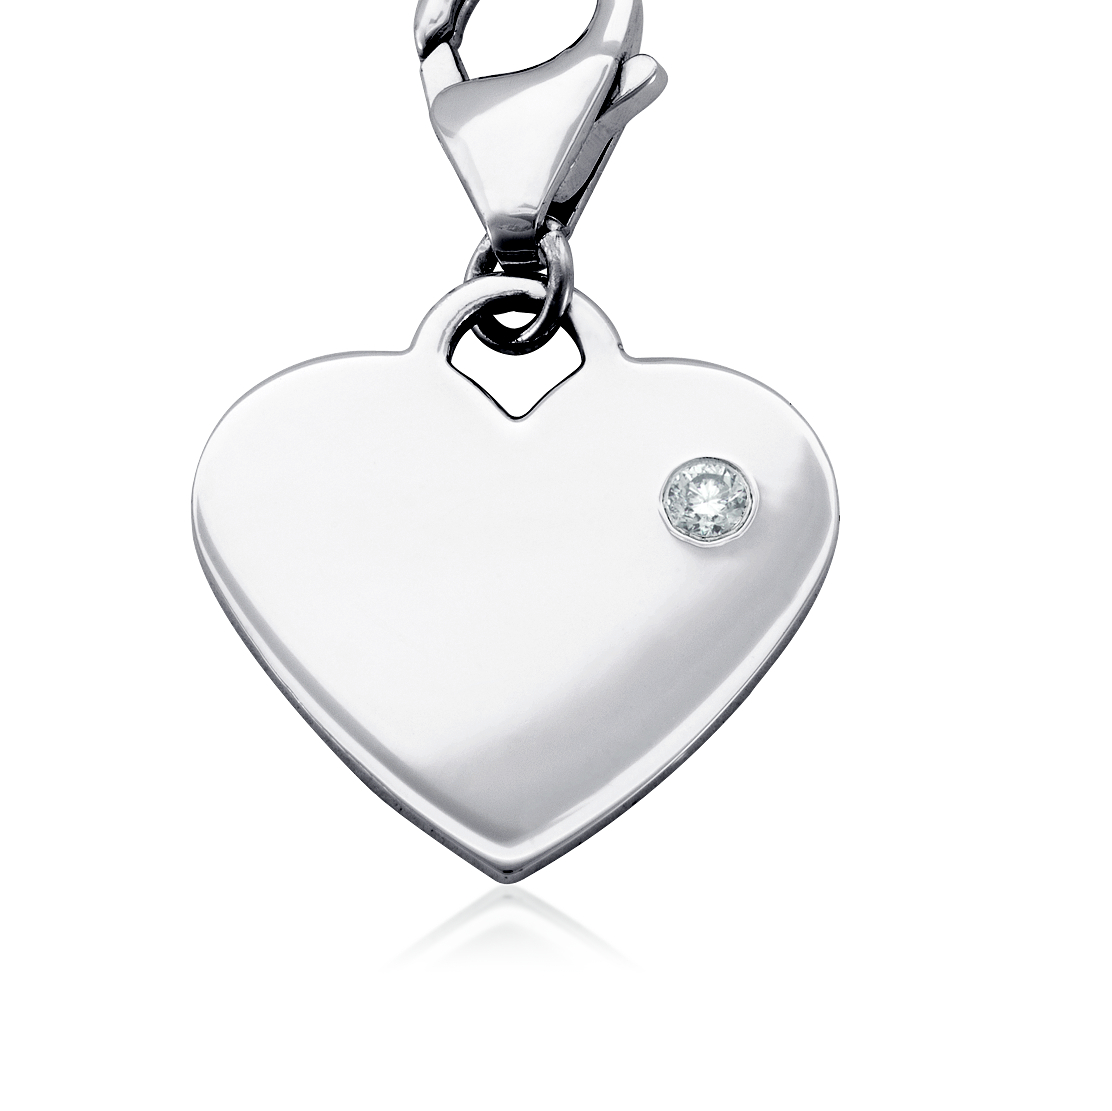 Diamond Birthstone Heart Charm in Sterling Silver (April)